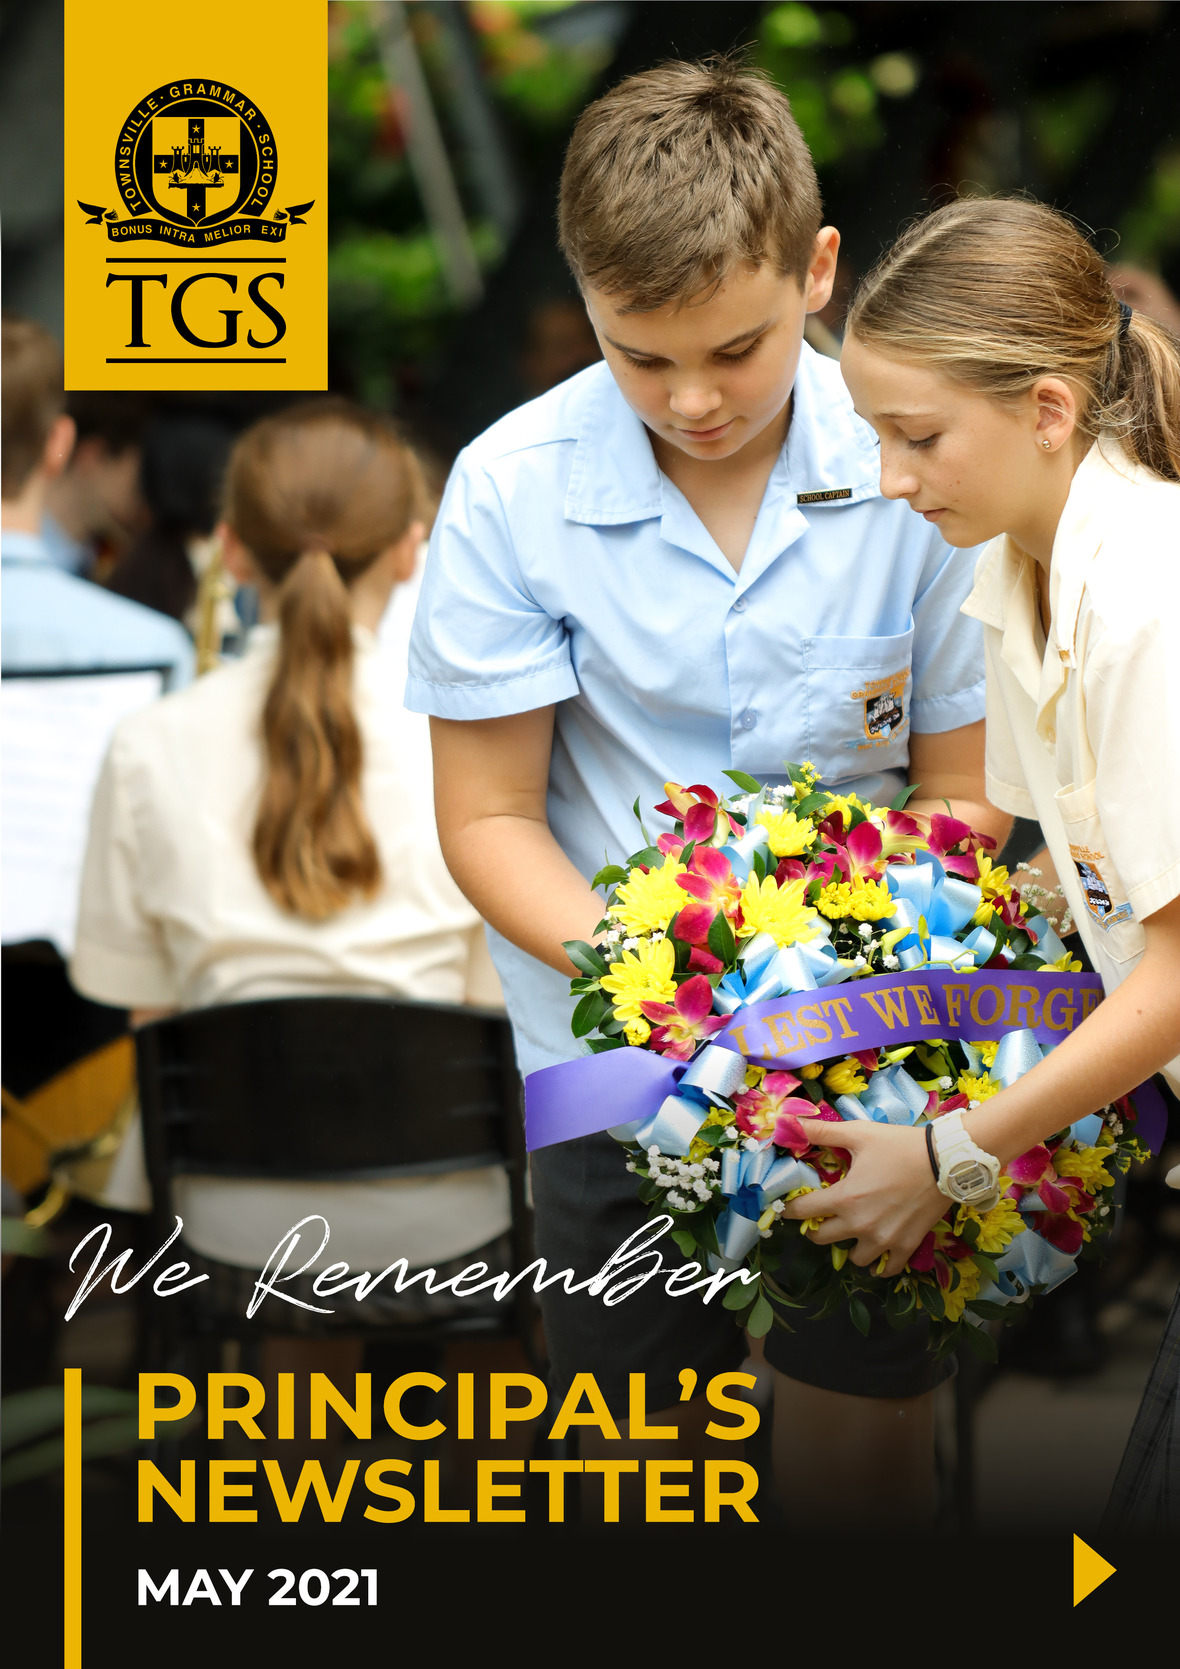 Principal s Newsletter - May